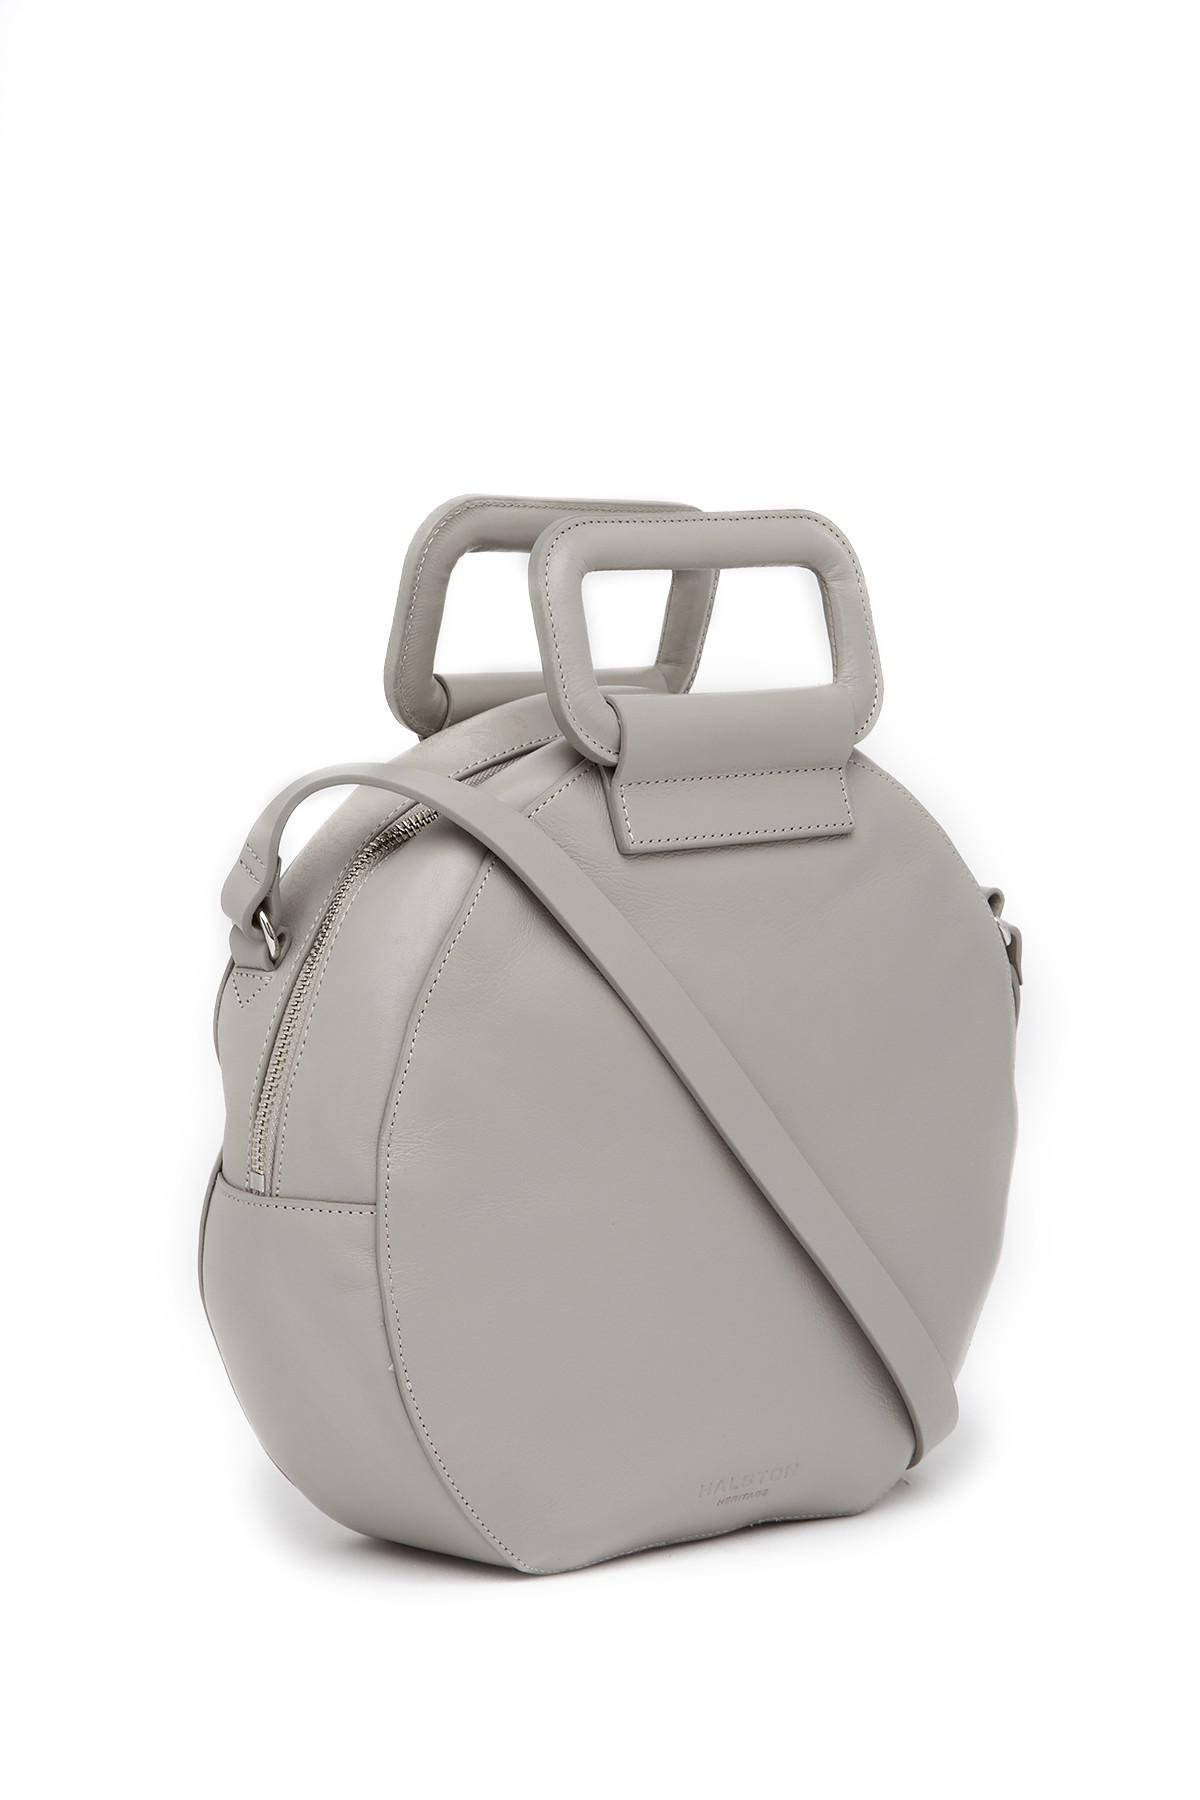 aa81c5af99 Lyst - Halston Leather Handle Circle Crossbody Bag in Gray